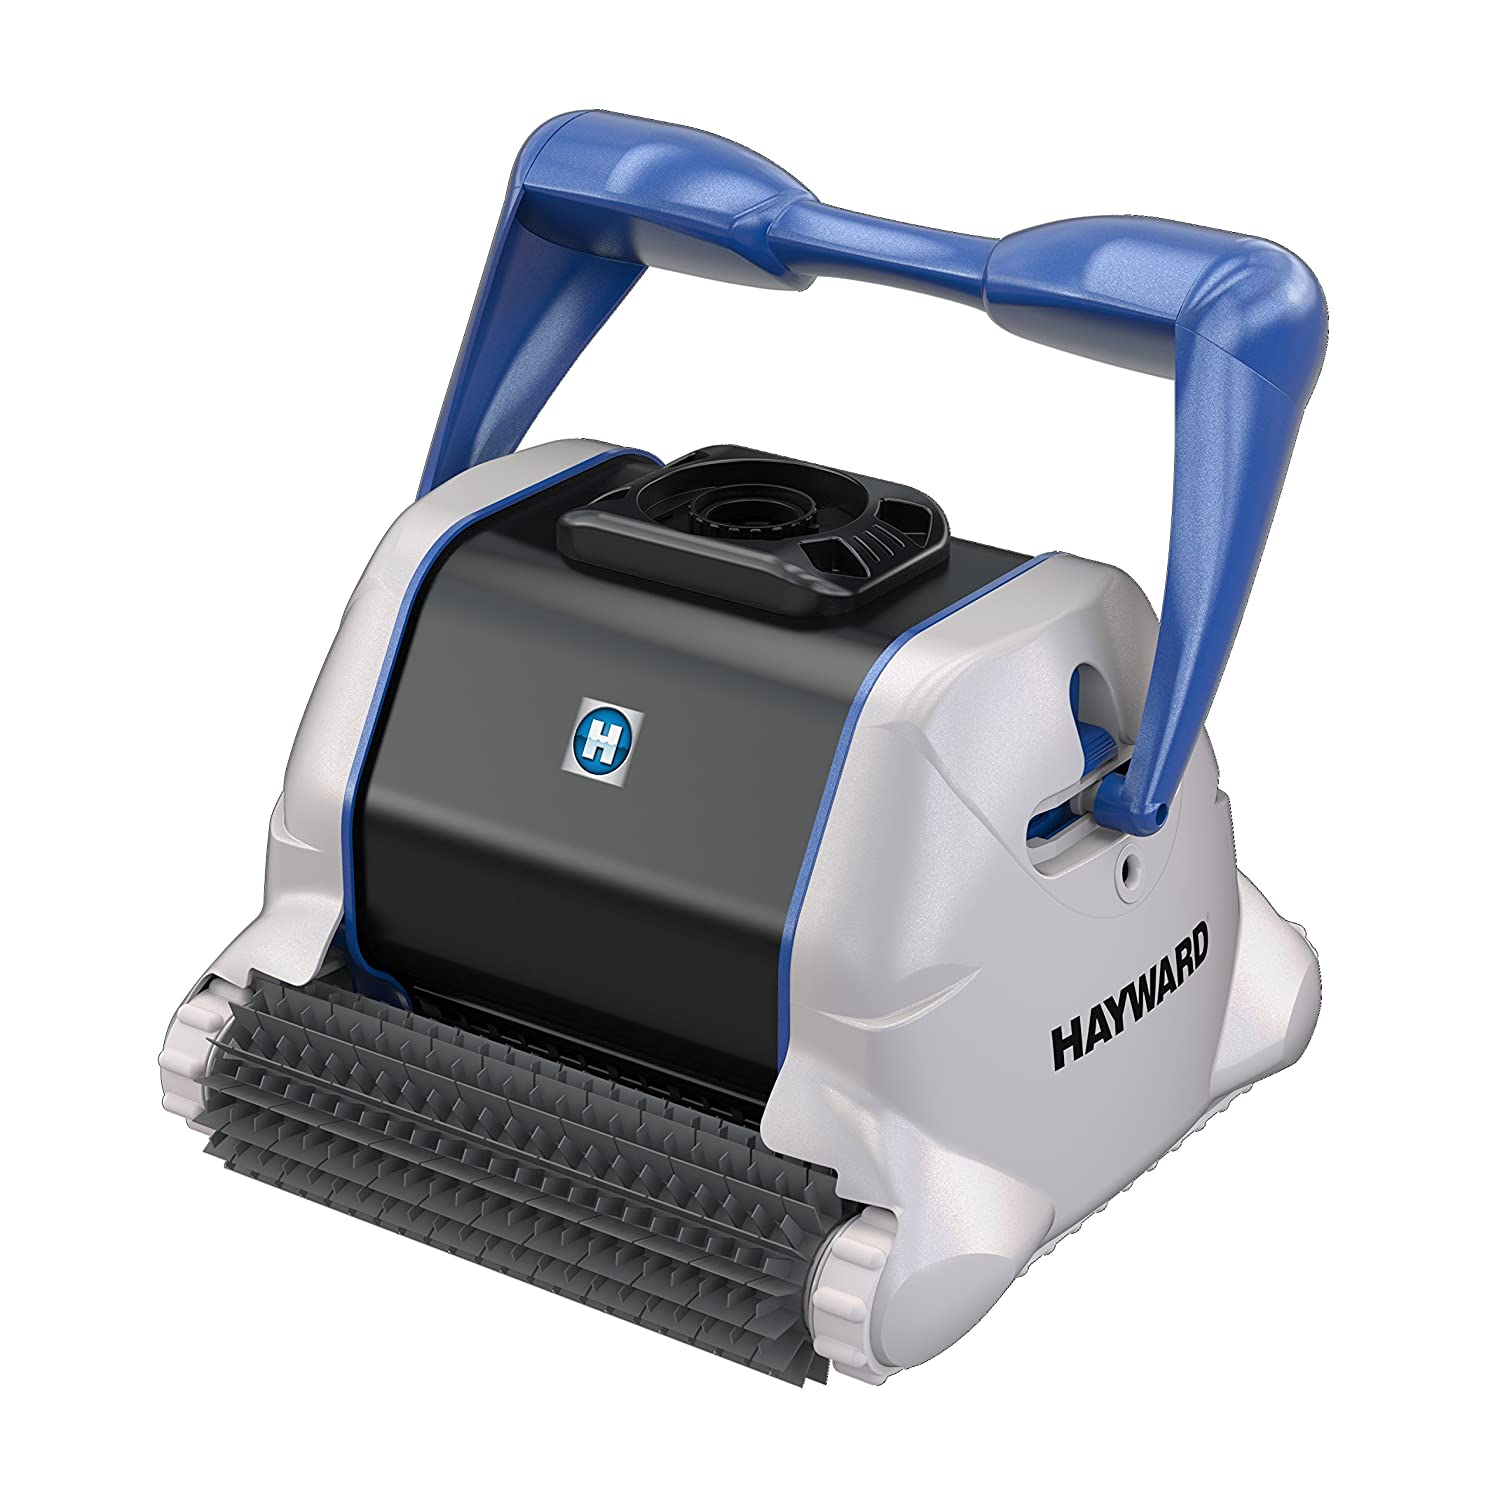 Hayward Robotic Pool Vacuum